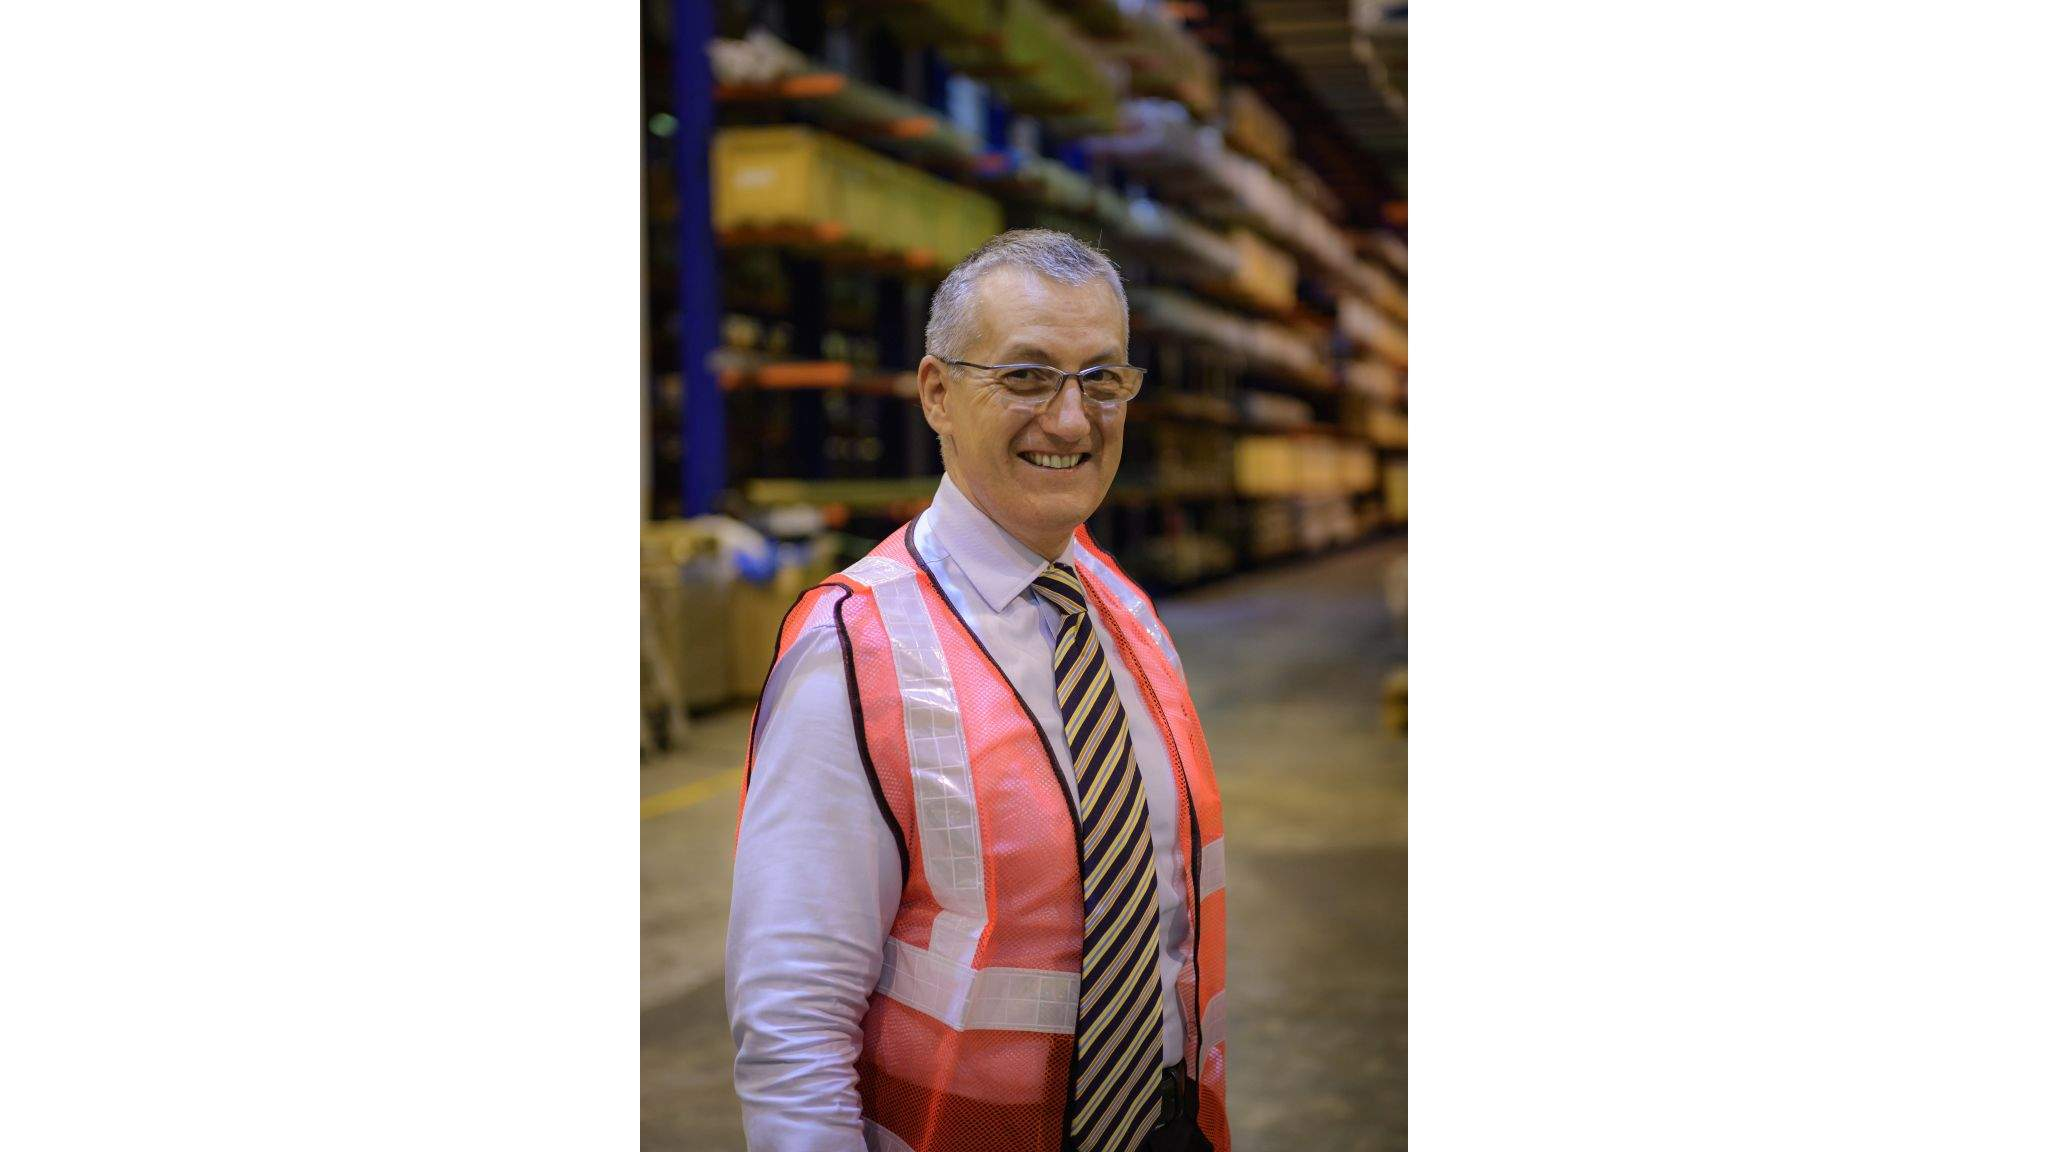 Frank Stadus, Managing Director DACHSER Air & Sea Logistics Singapore